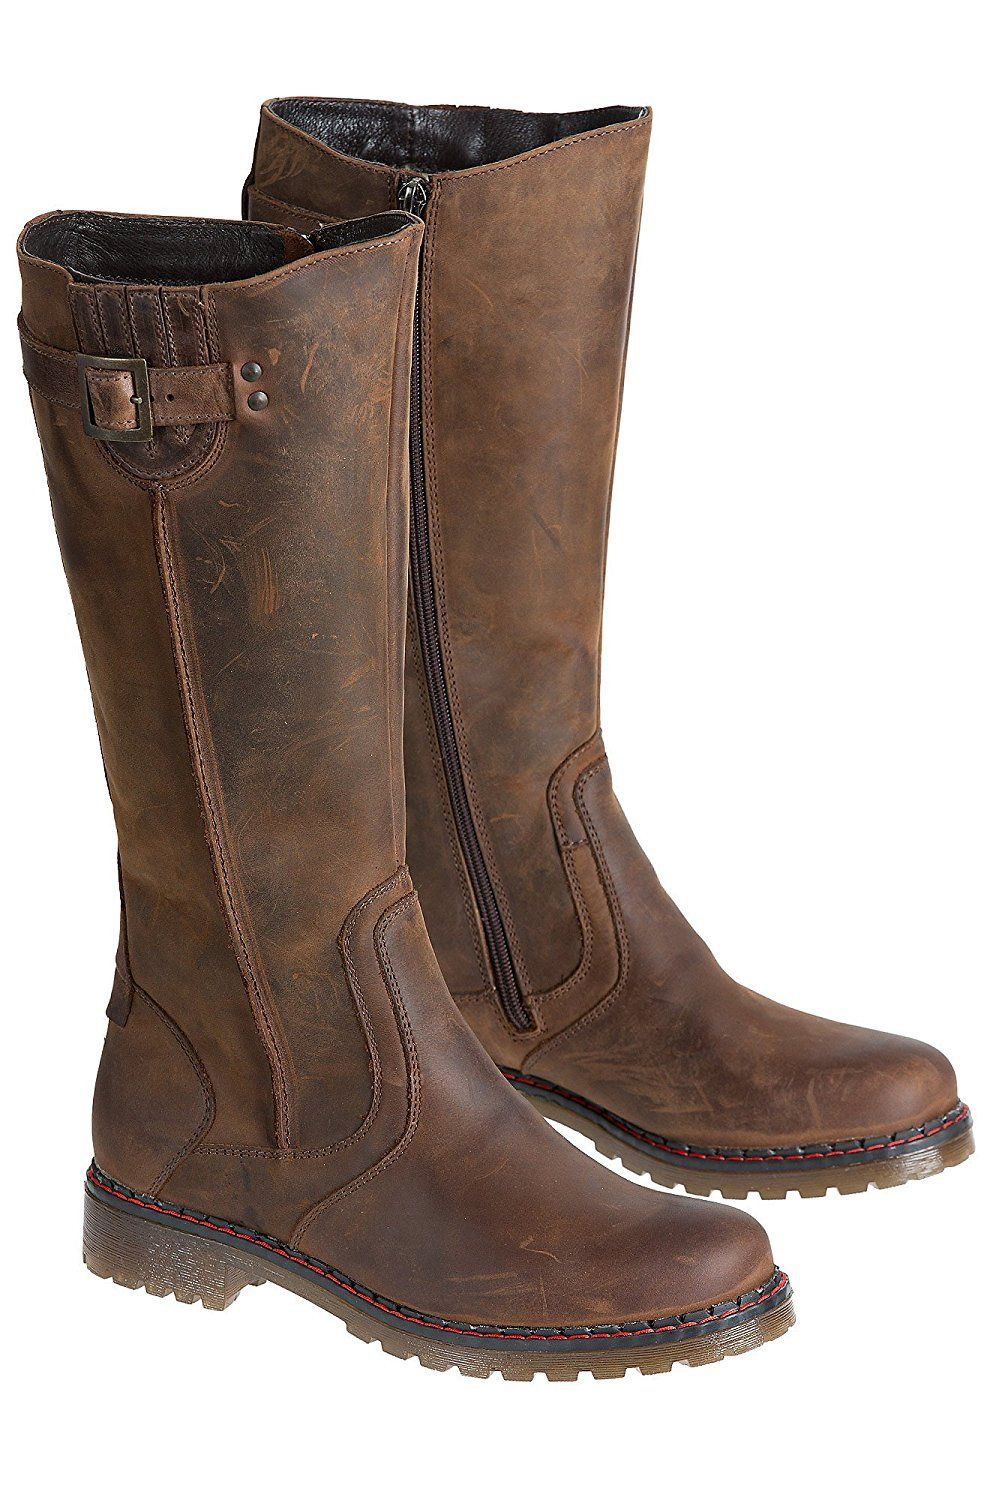 157a9e79bc3 Women's Overland Debra Wool-Lined Leather Boots *** See this great ...